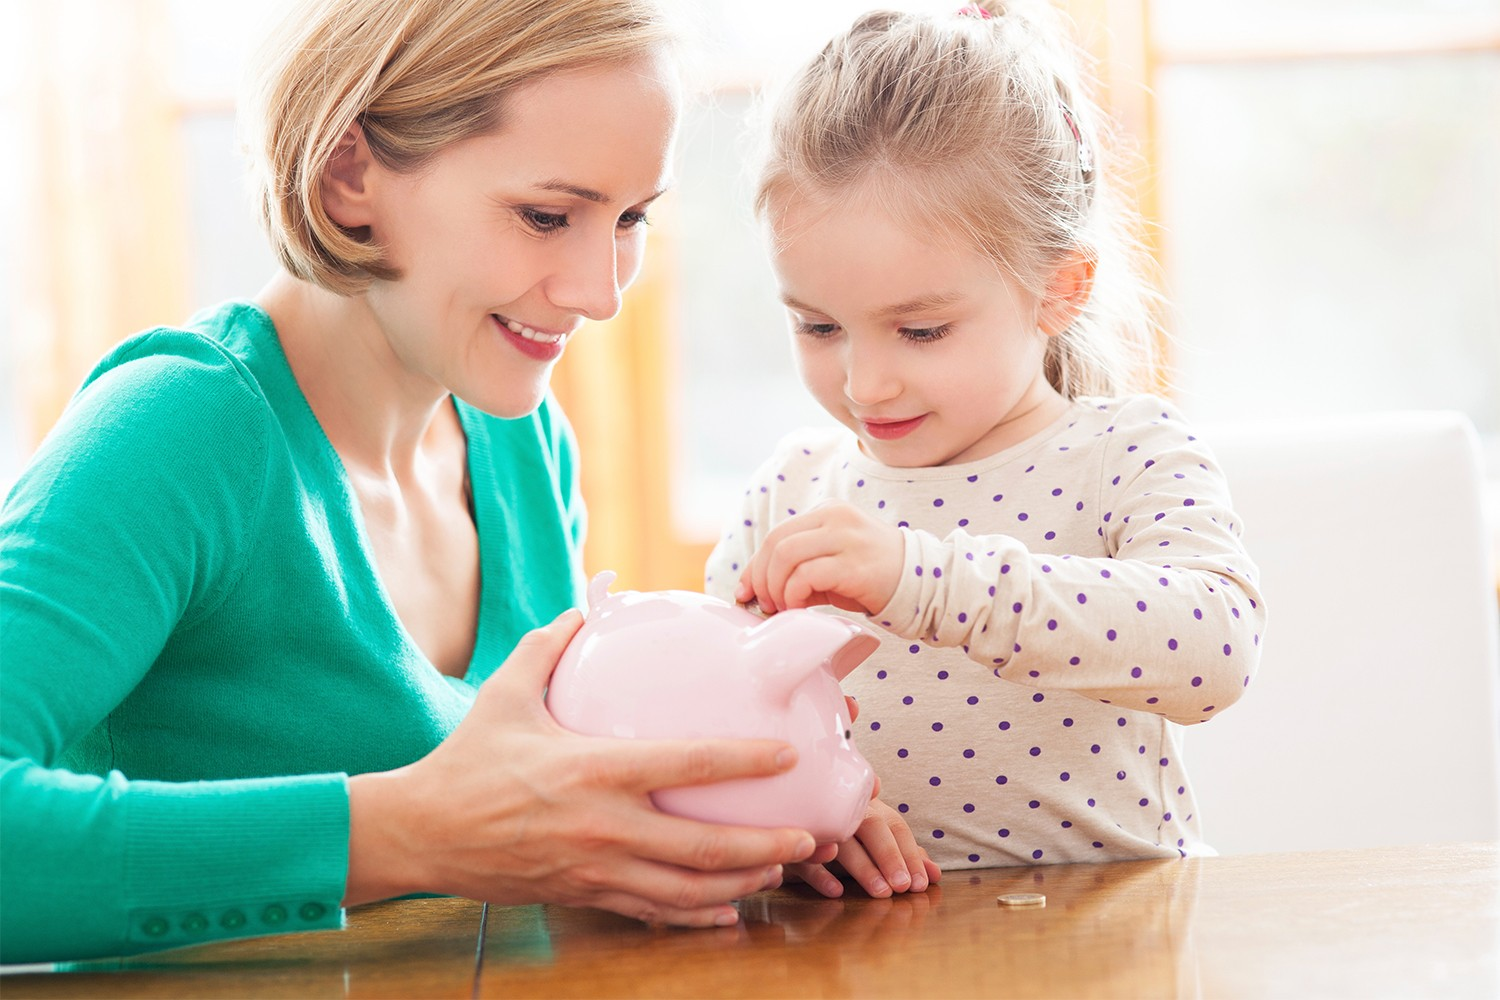 monther and daughter putting coins in piggy bank